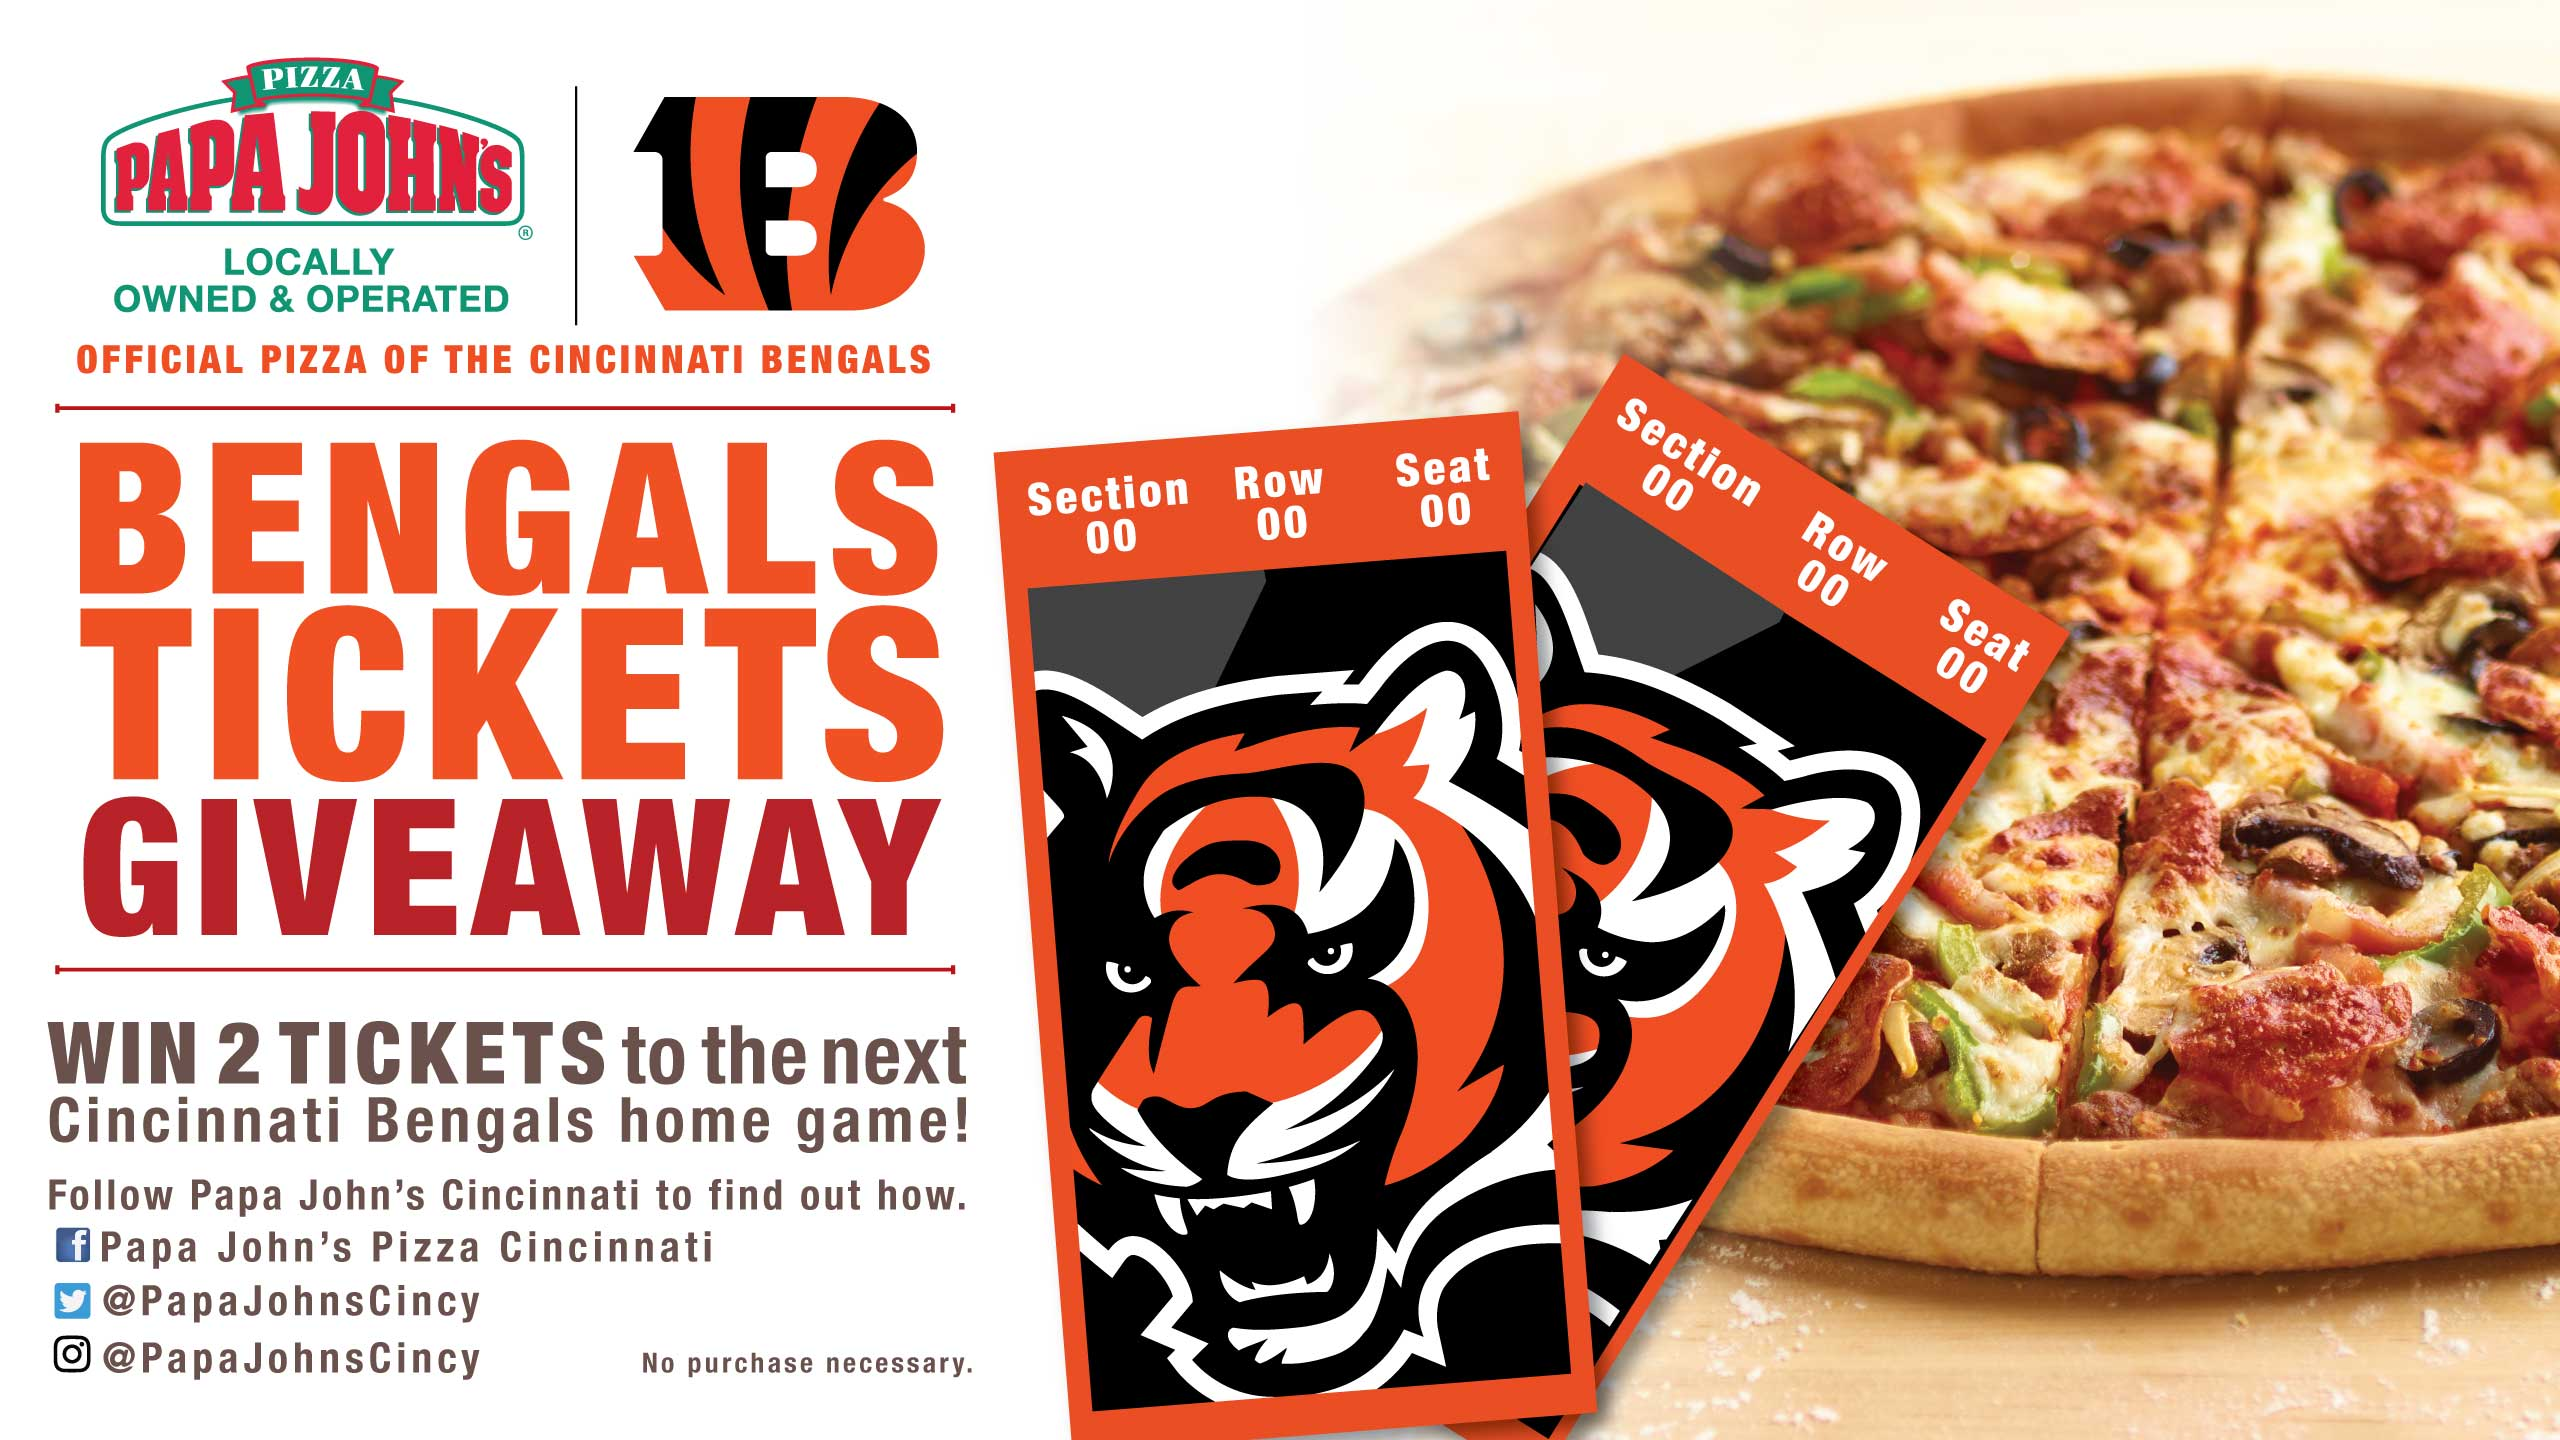 Papa John's Ticket Giveaway